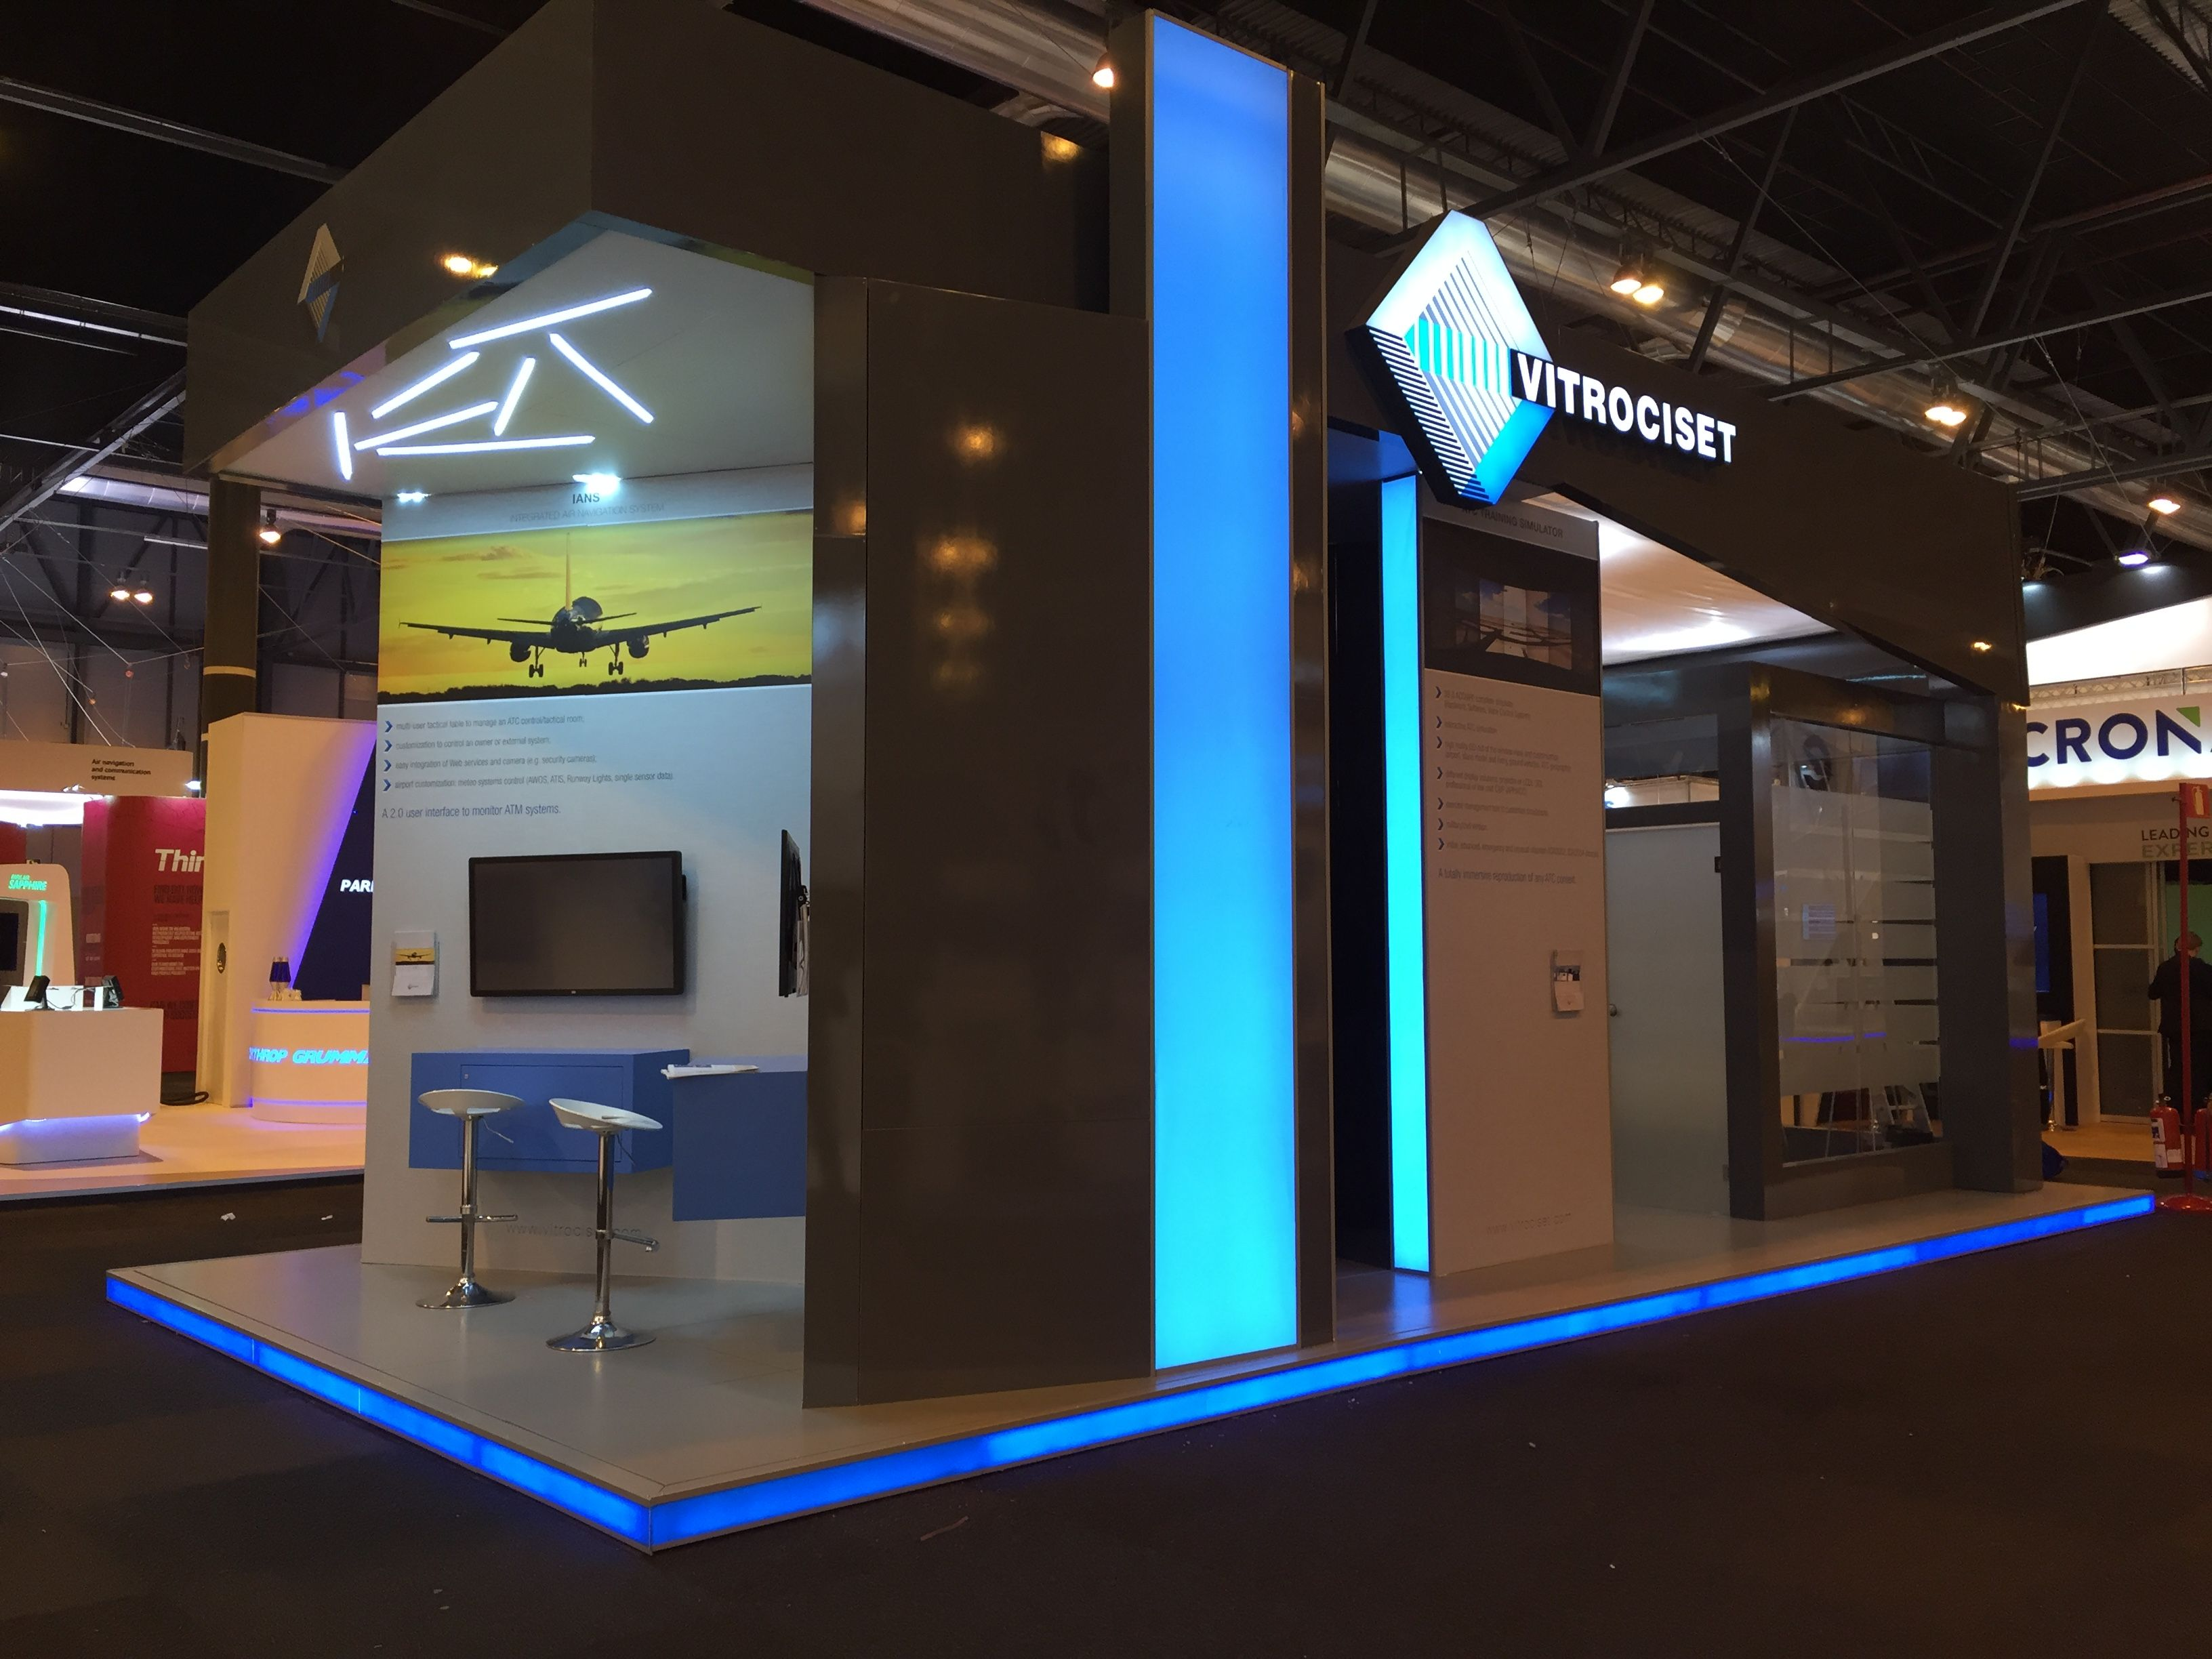 Ingegno s r l  for Vitrociset S p a  stand ATM 2016 @ Madrid, Spain